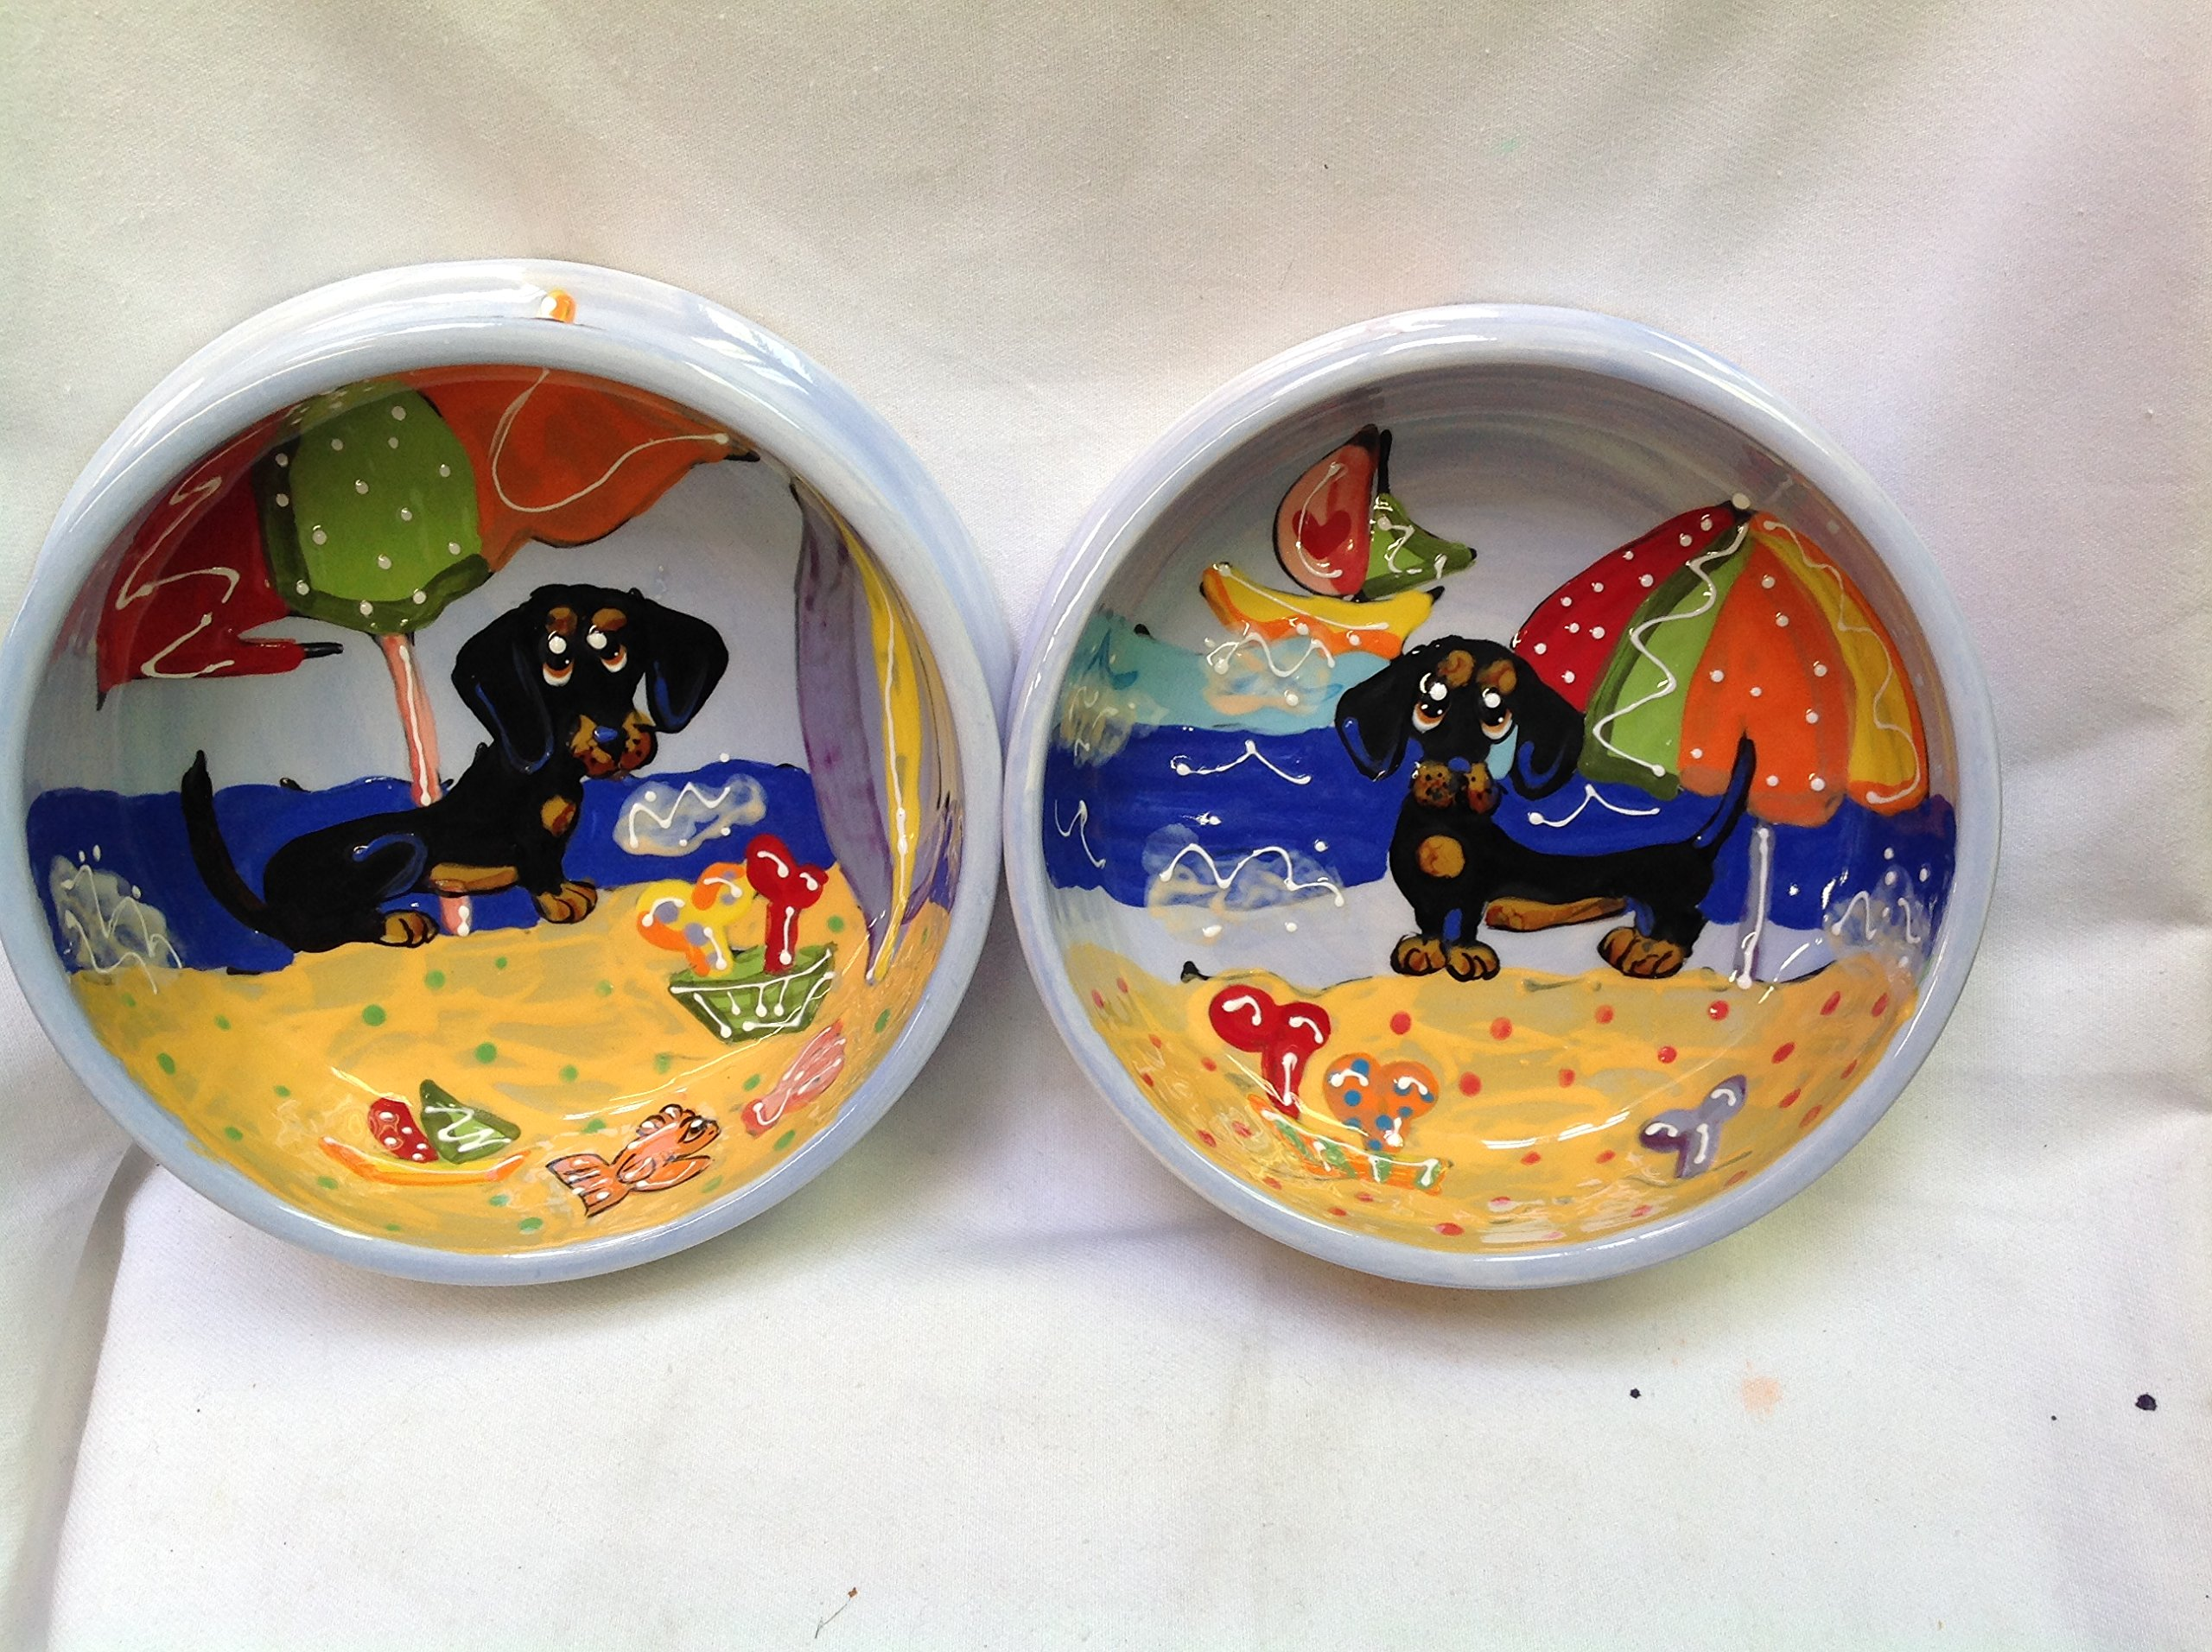 Dachshund 8''/6'' Pet Bowls for Food/Water. Personalized at no Charge. Signed by Artist, Debby Carman.